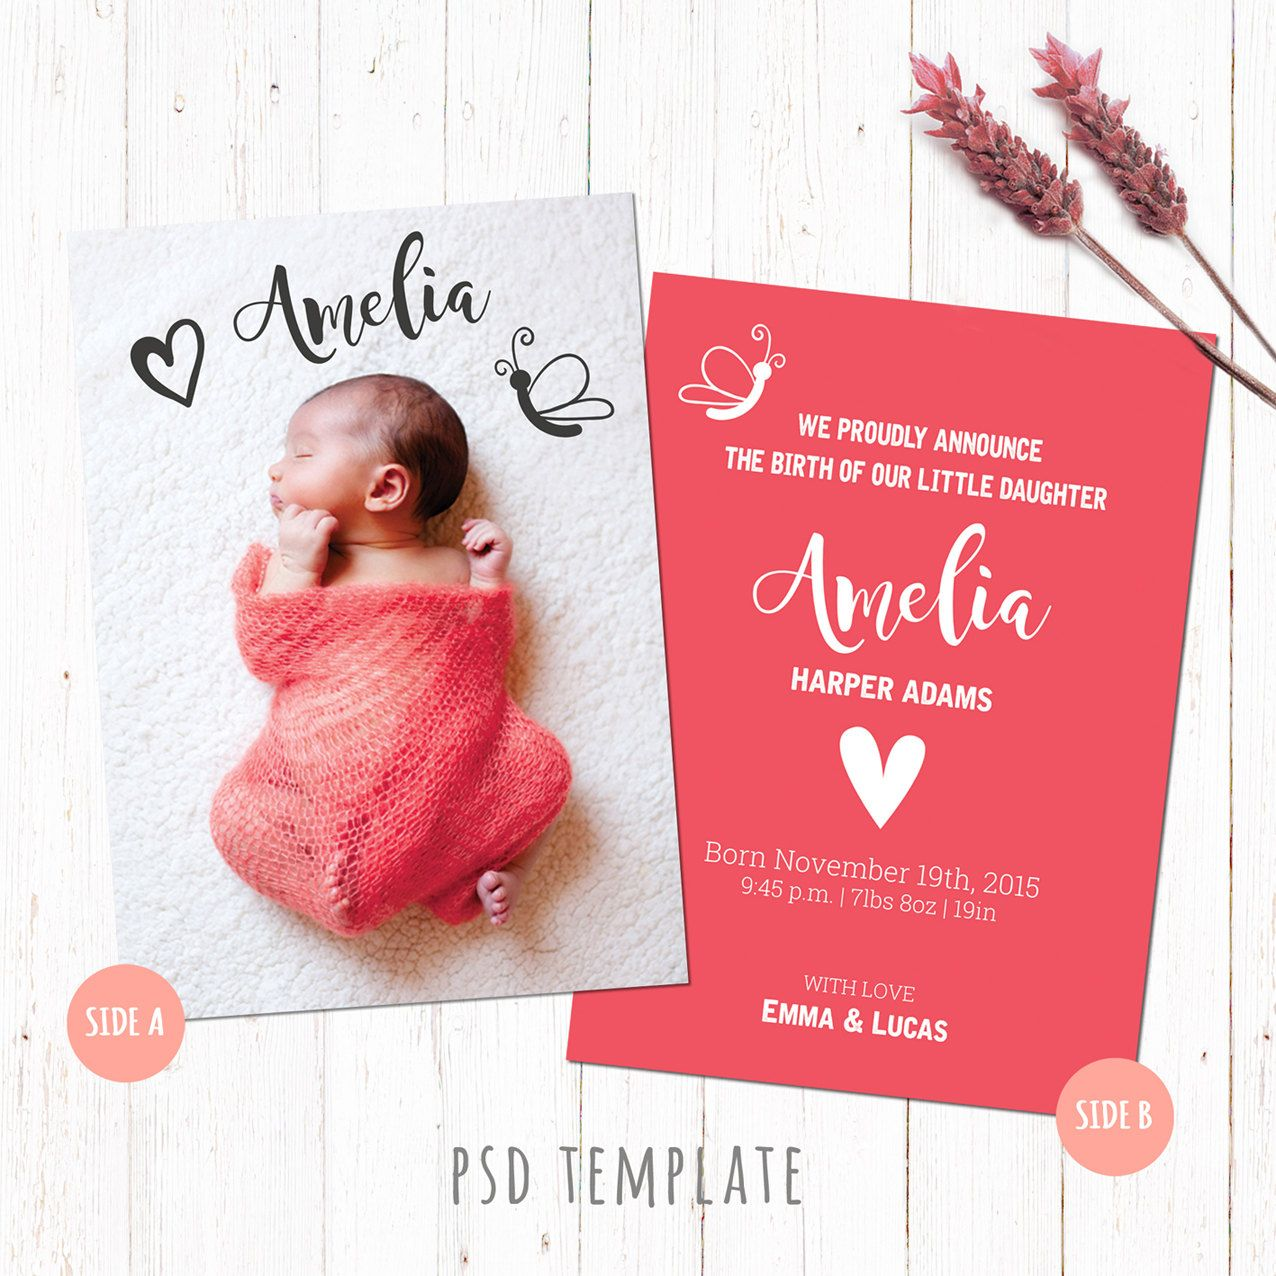 Birth announcement template card Baby girl birth card Newborn – Birth Announcement Photoshop Template